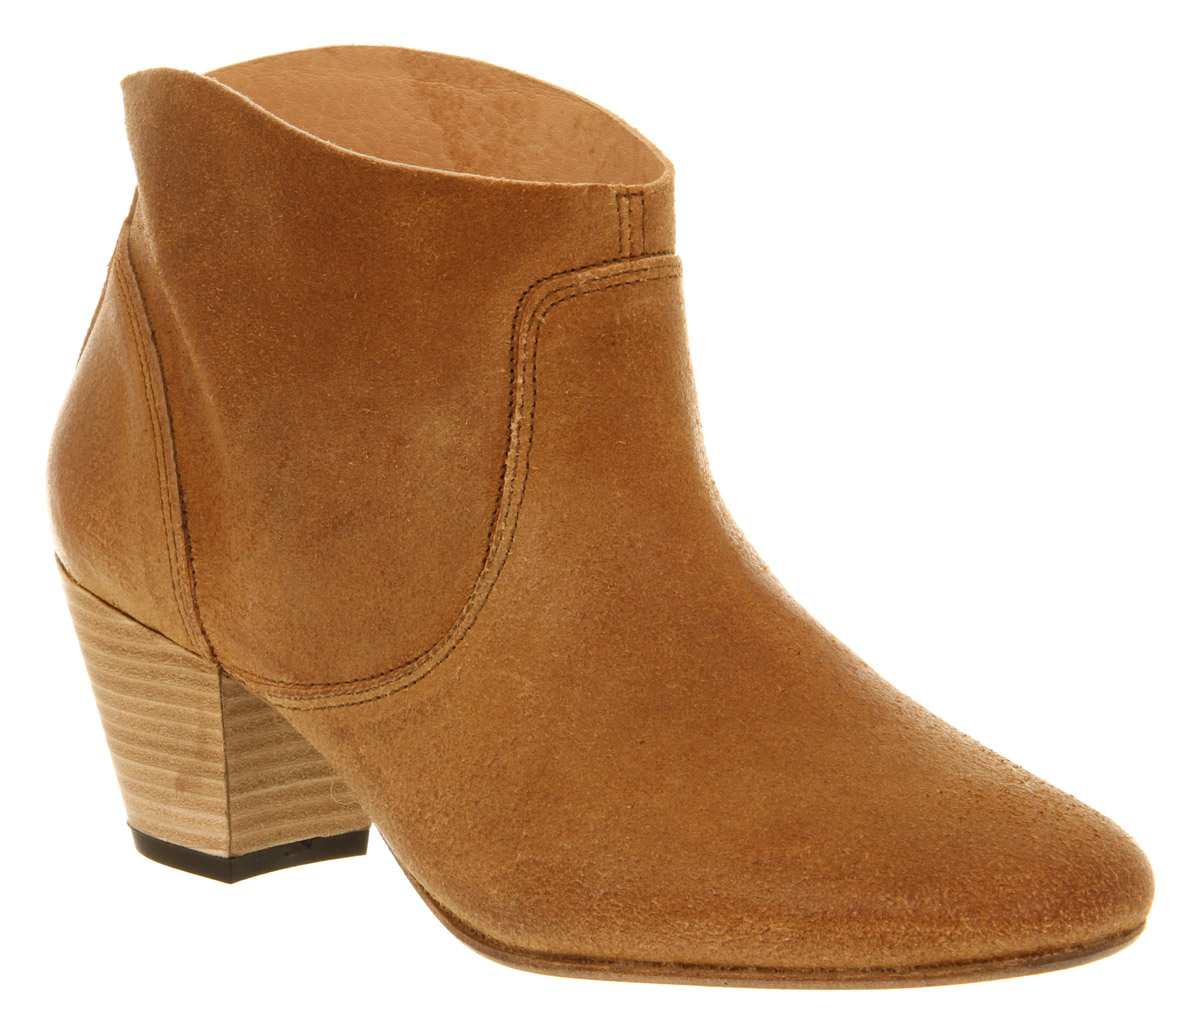 H by hudson Mirar Heeled Ankle Boot Tan Leather in Brown | Lyst